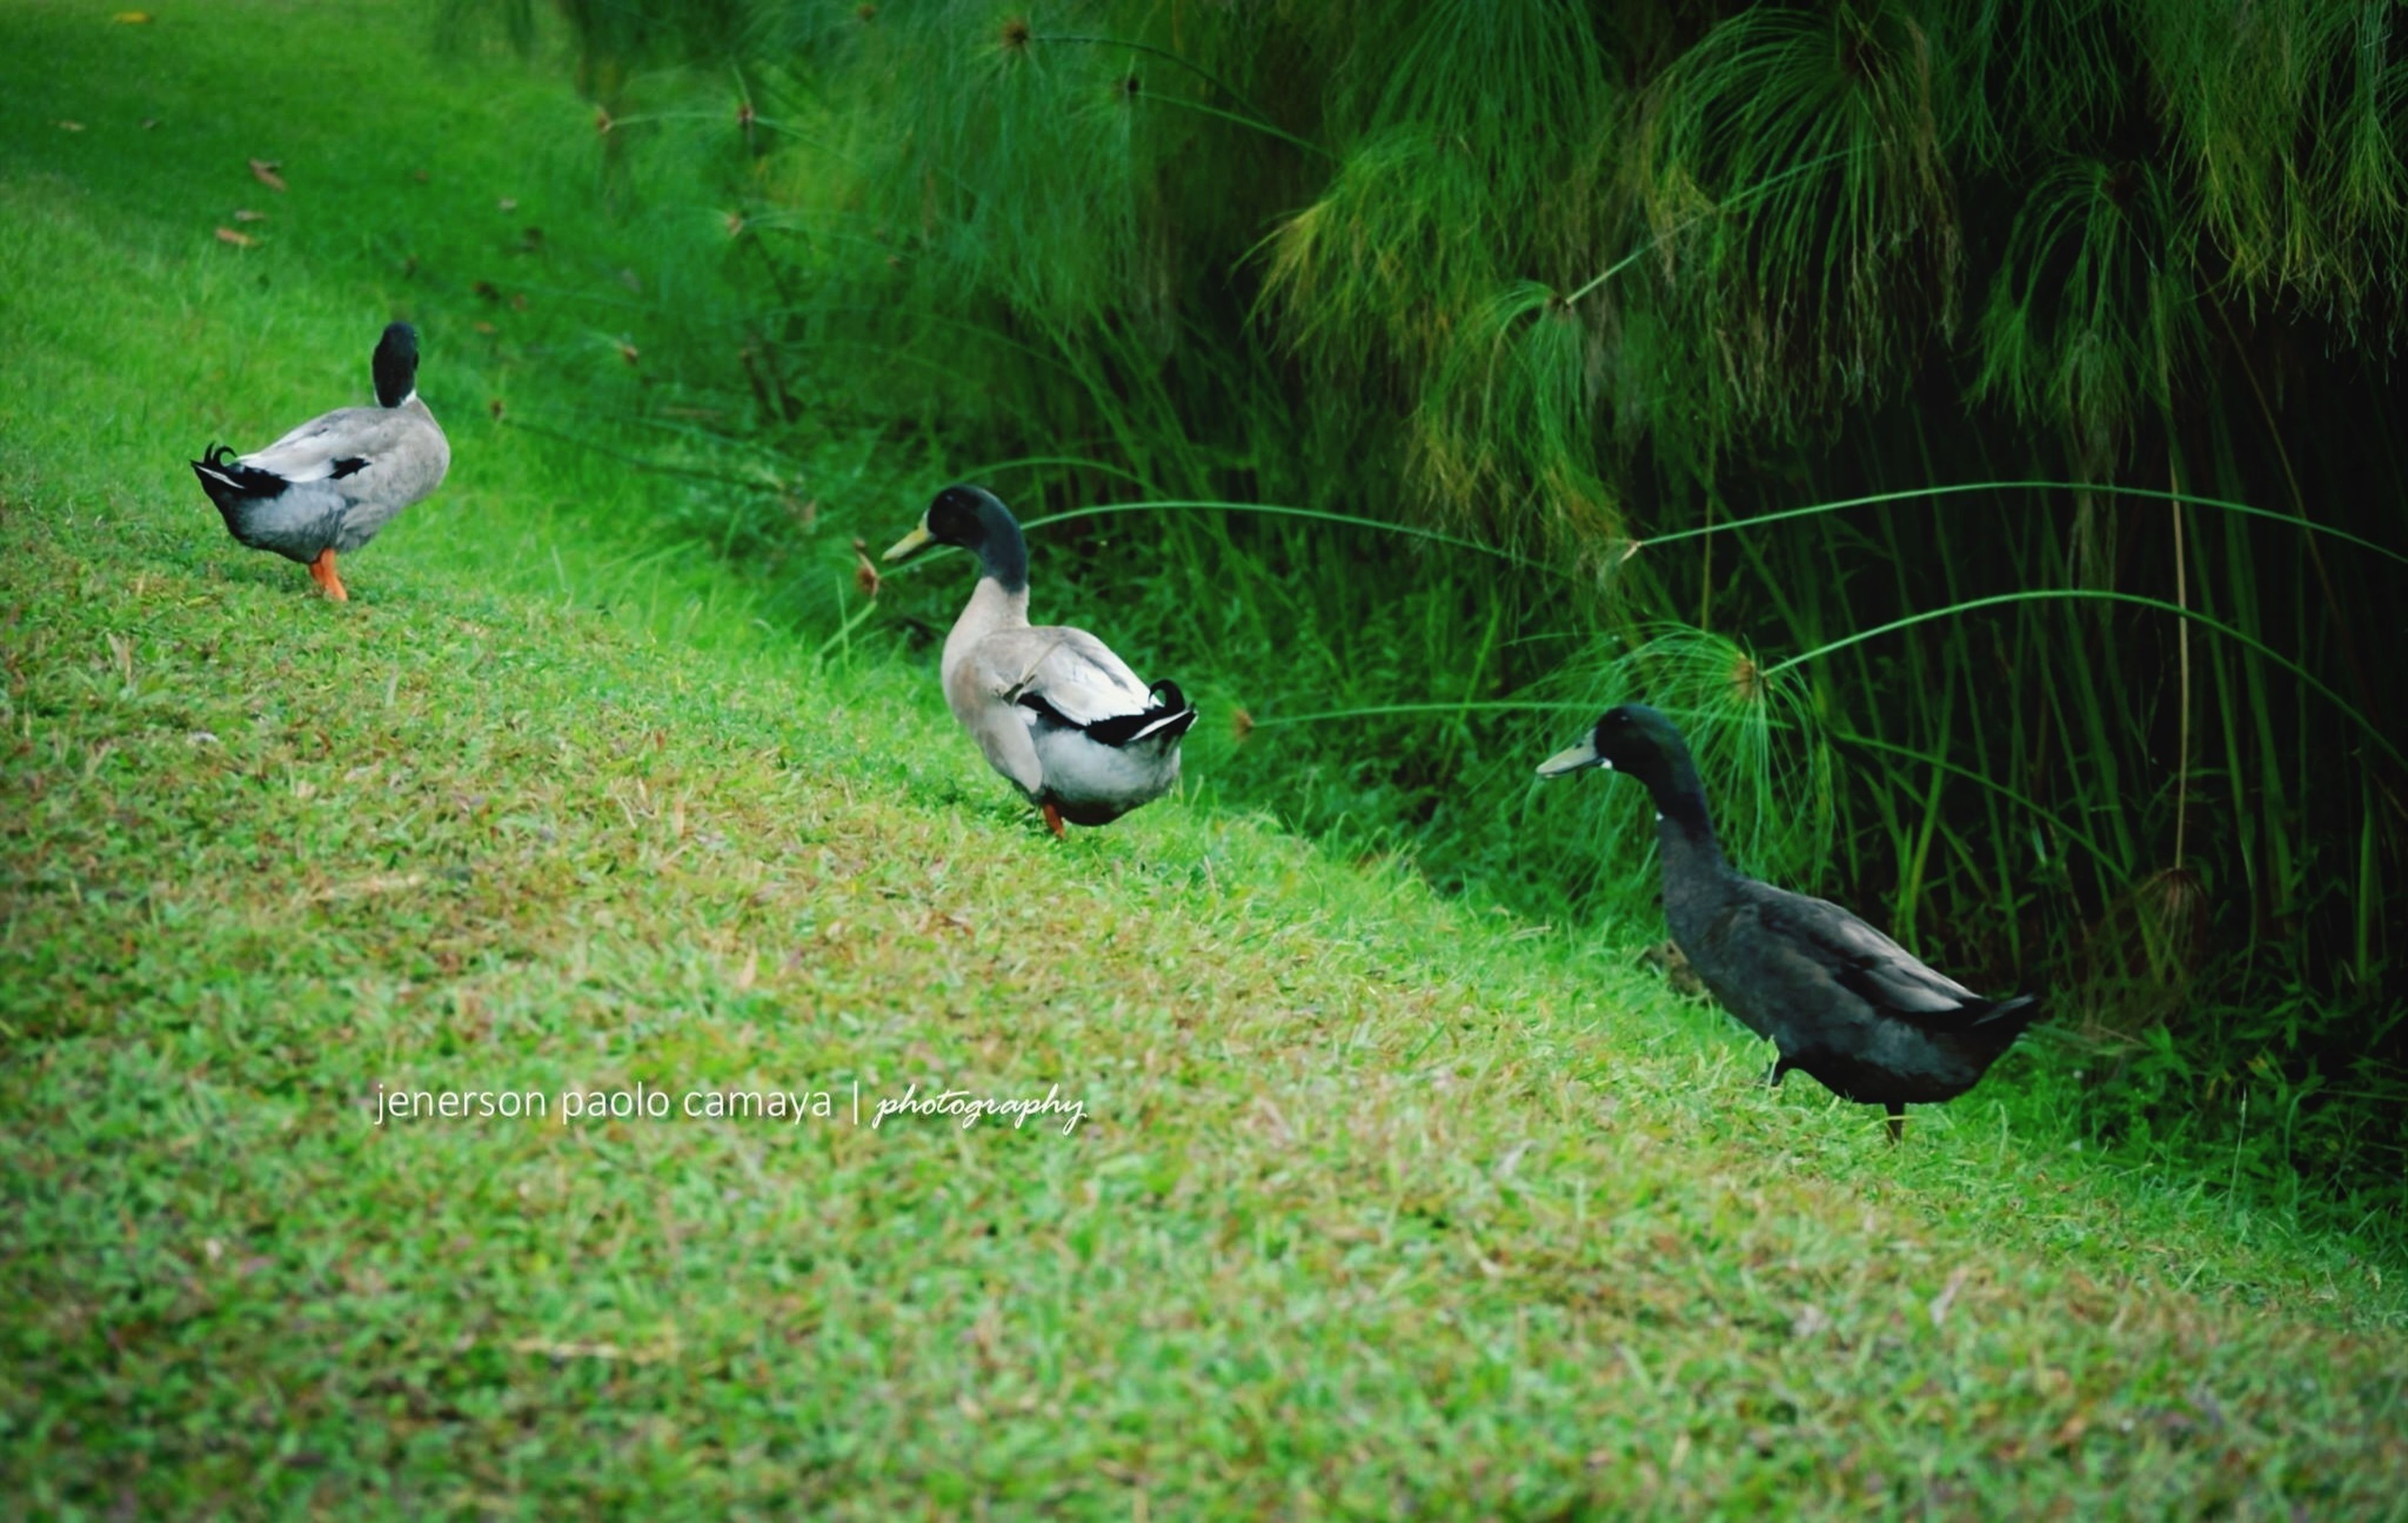 animal themes, animals in the wild, bird, wildlife, grass, green color, nature, two animals, one animal, perching, field, duck, plant, day, outdoors, growth, no people, full length, high angle view, three animals